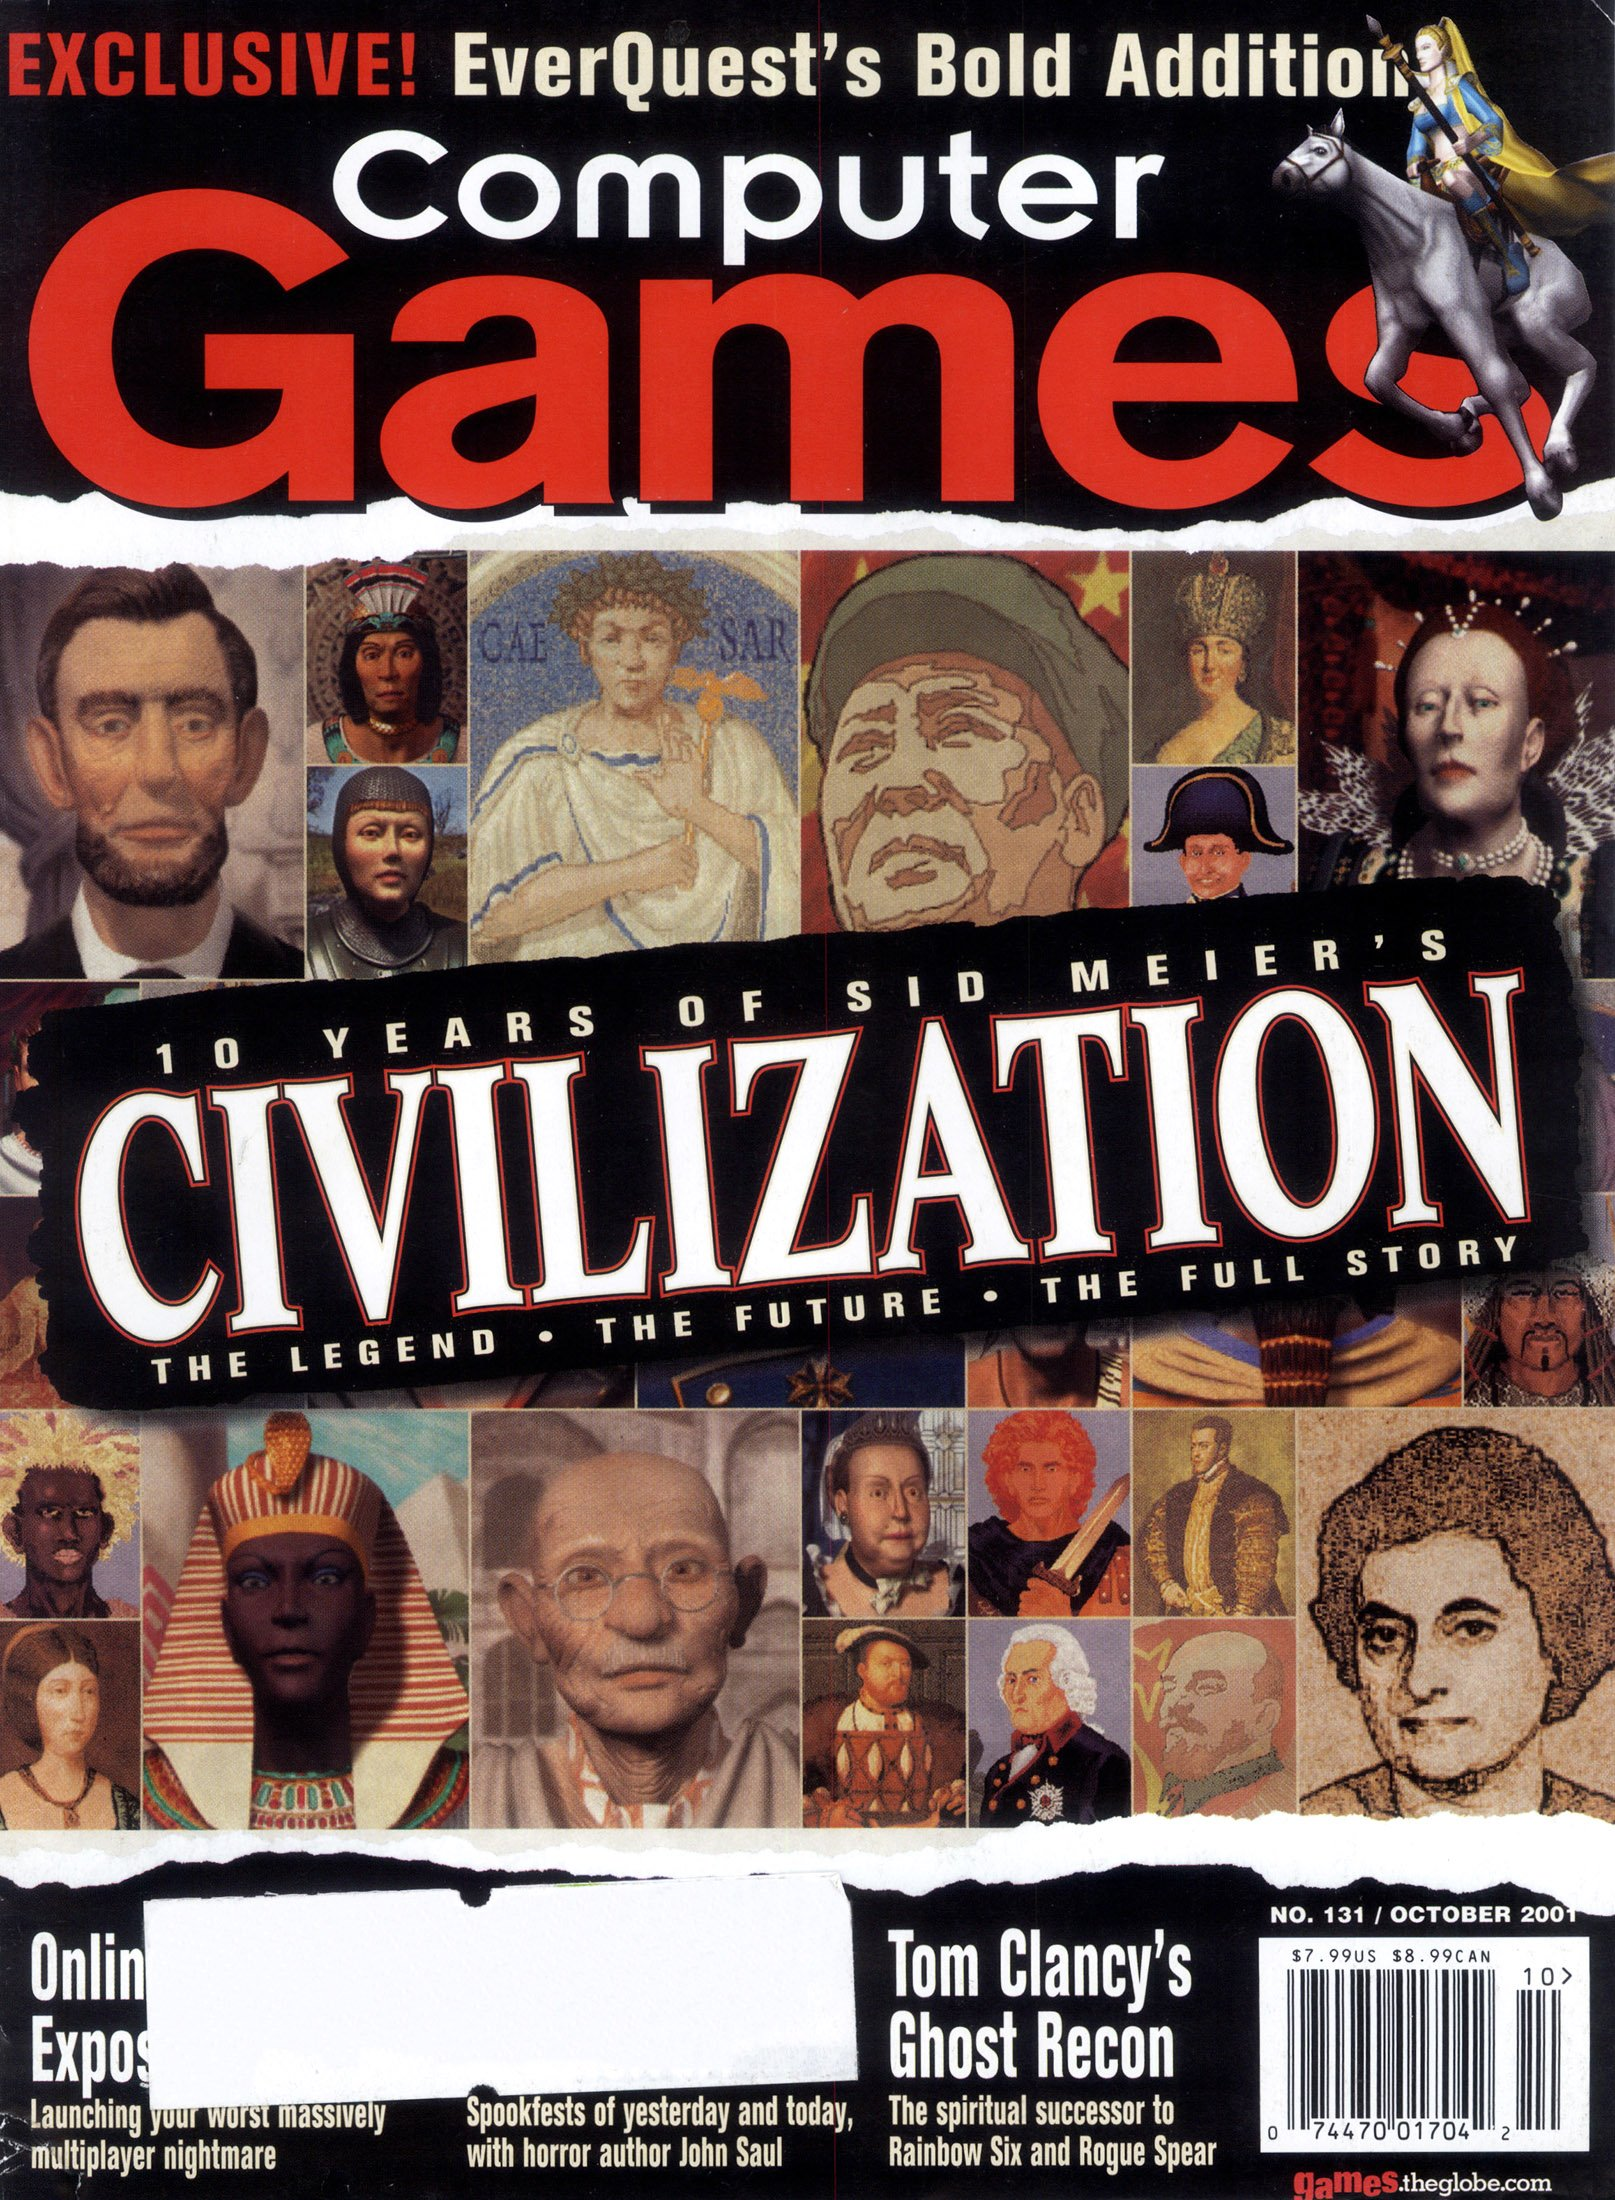 Computer Games Issue 131 (October 2001)